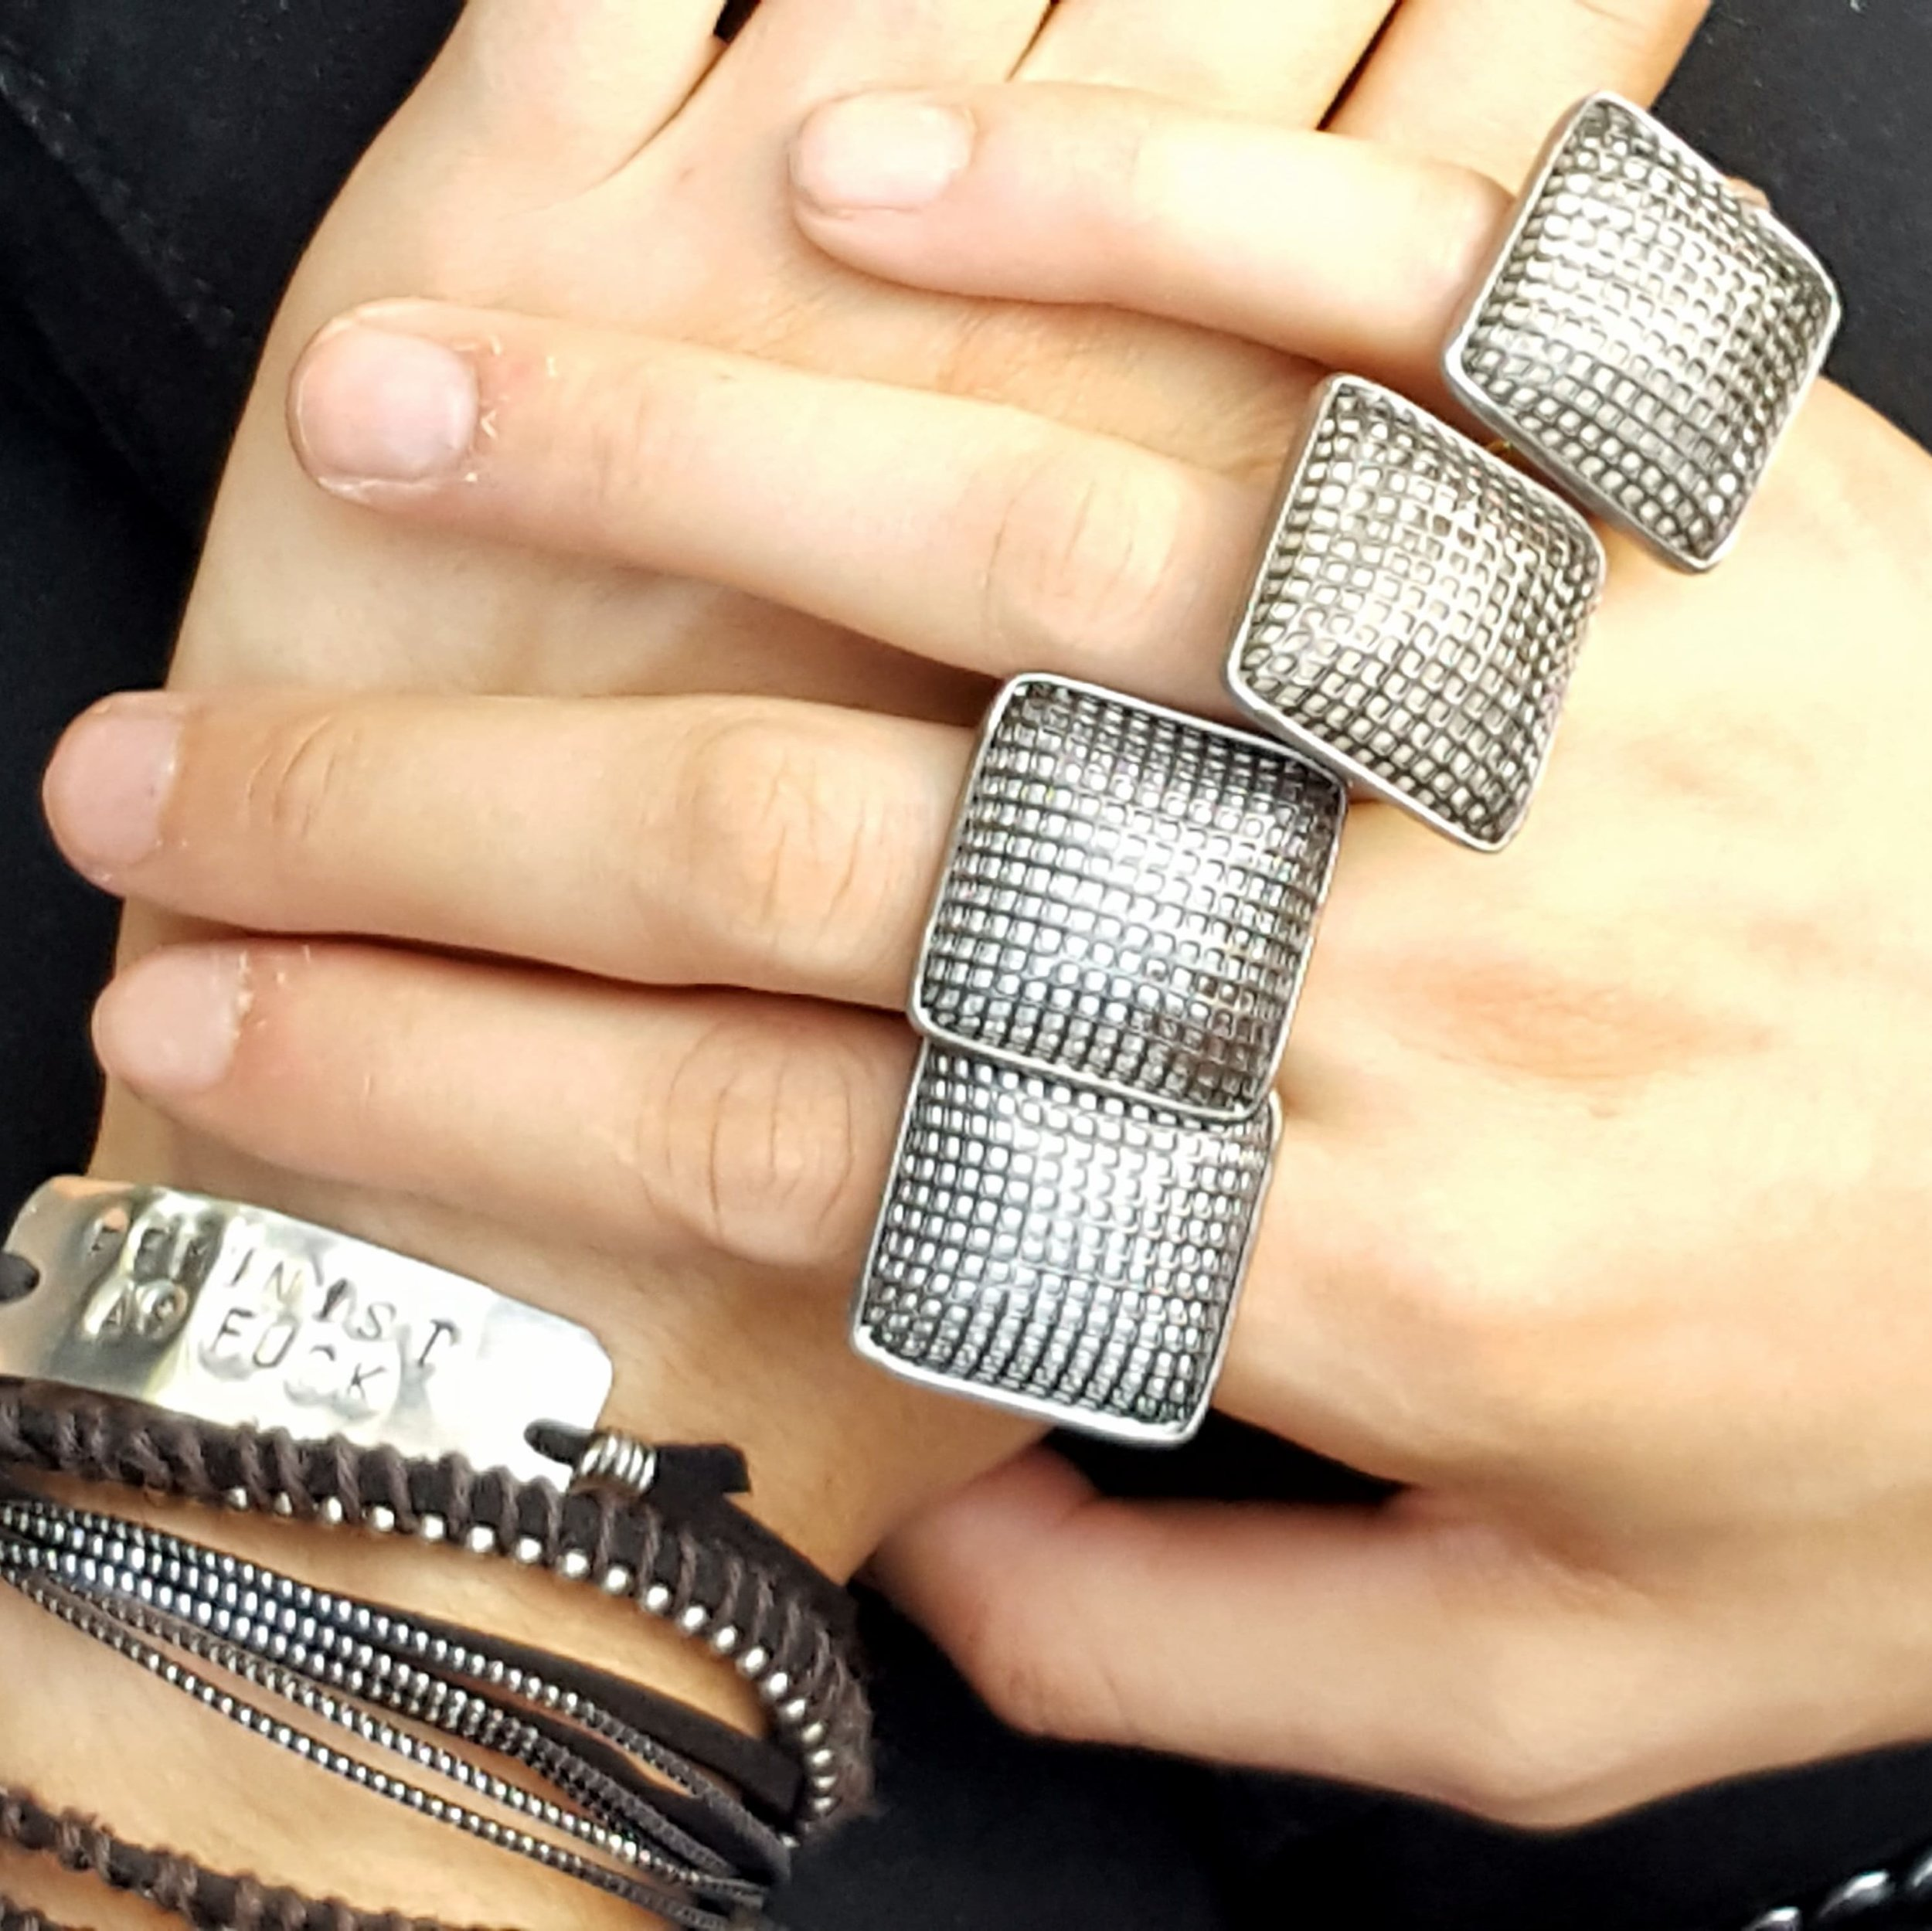 chex silver mesh adjustable rings on model